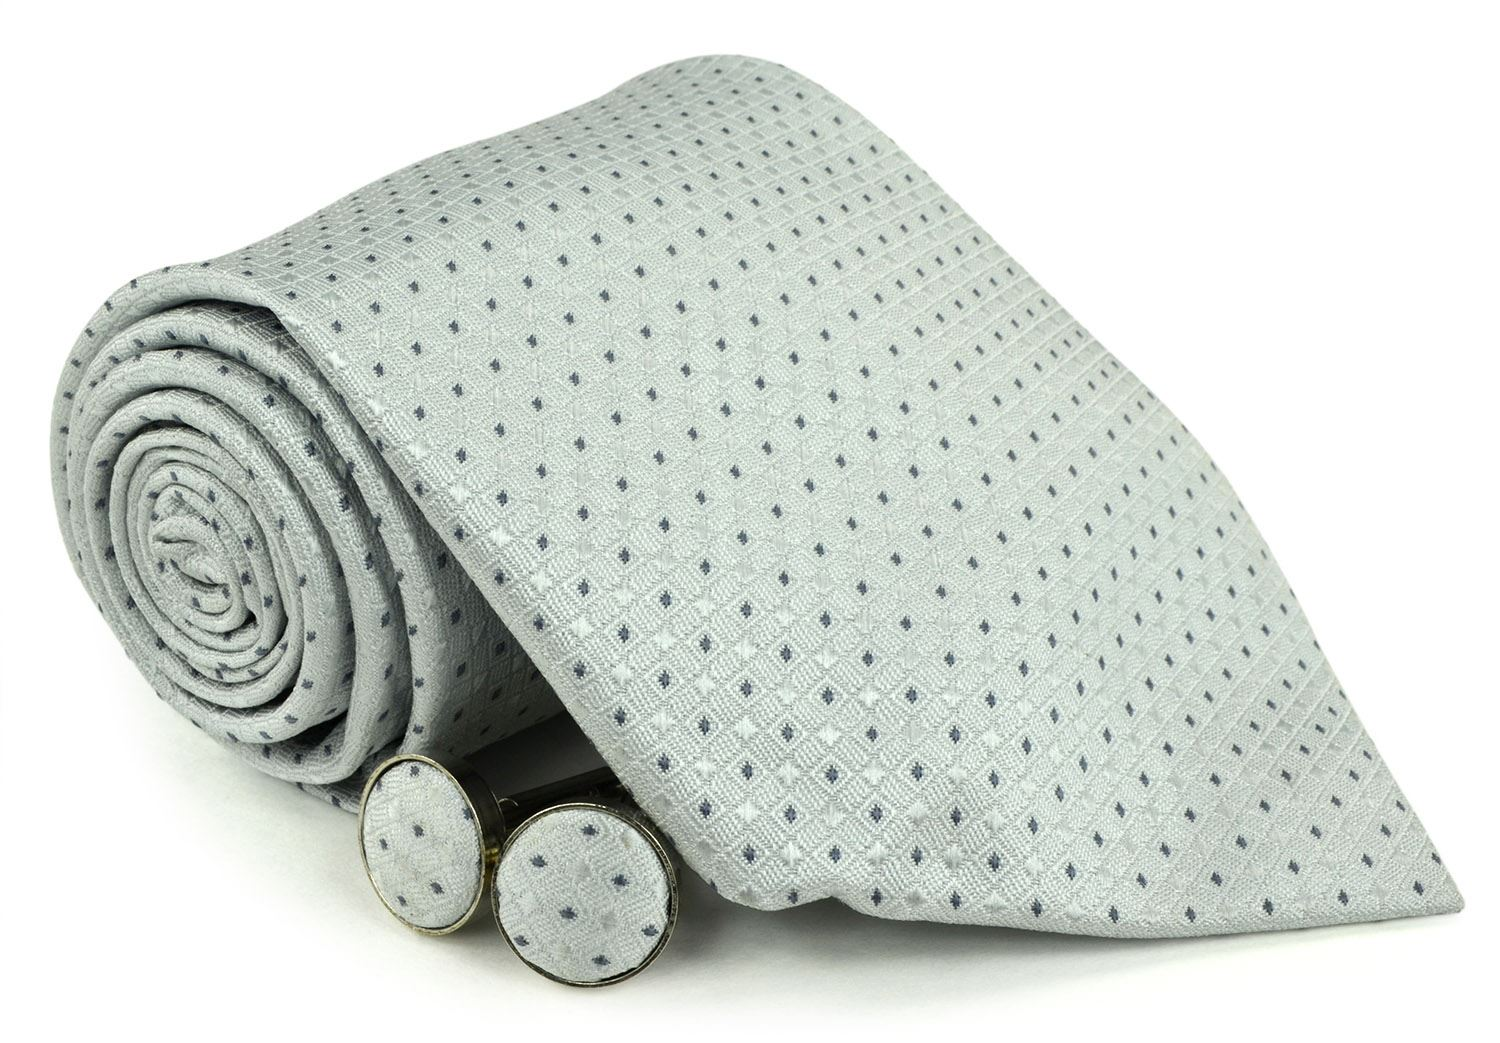 Moda Di Raza Men's NeckTies - 3 Inch Tie - Gift Box Sets - LightGray Tie With Cuff-link In Box